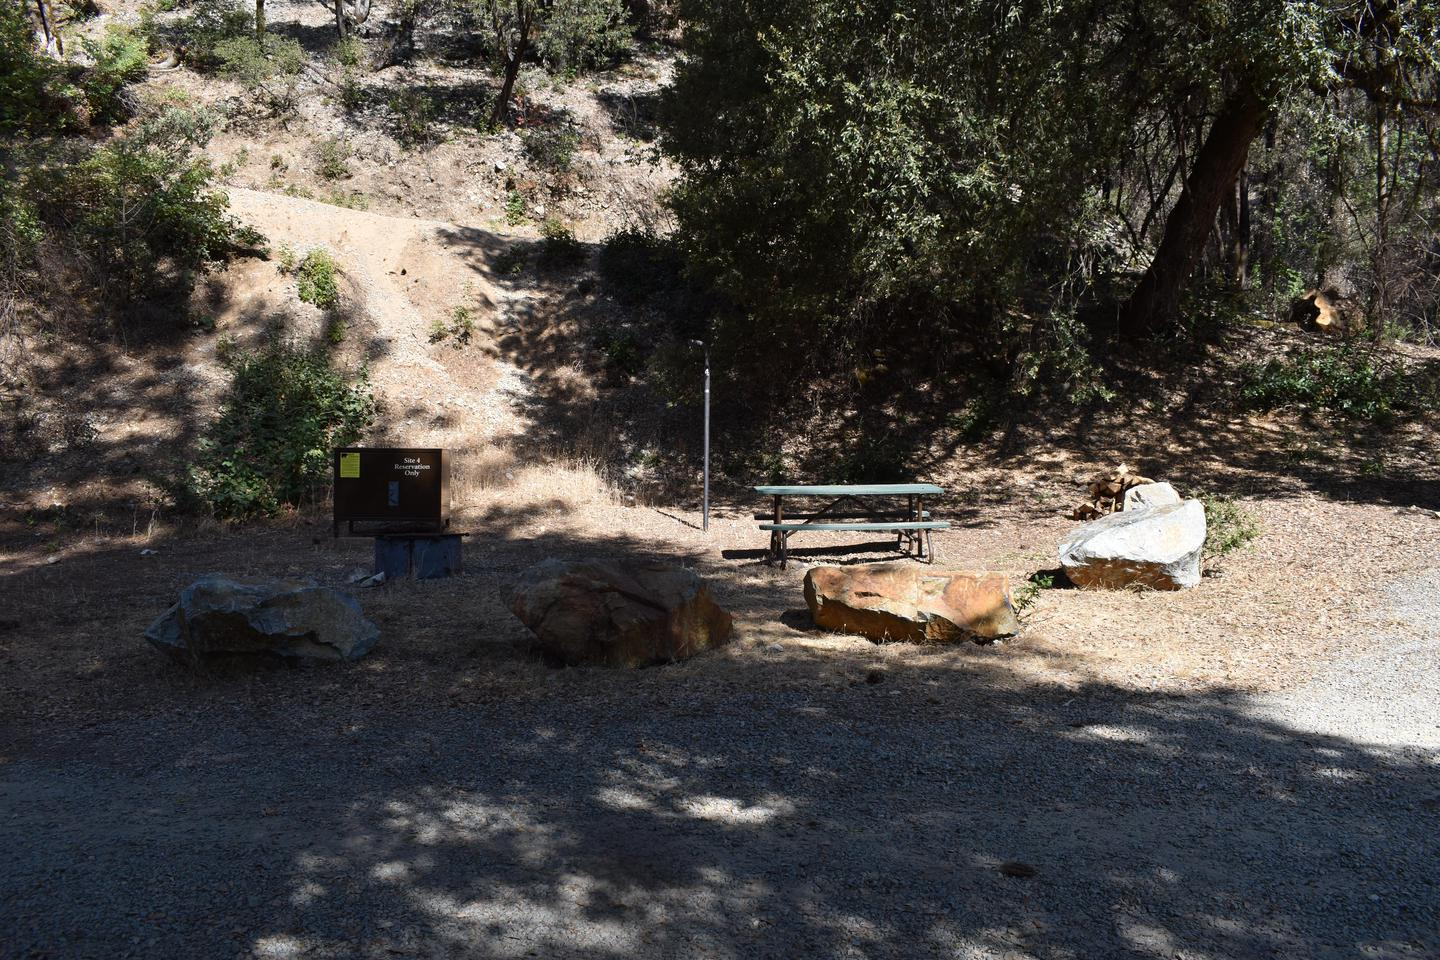 Peltier Bridge Campground